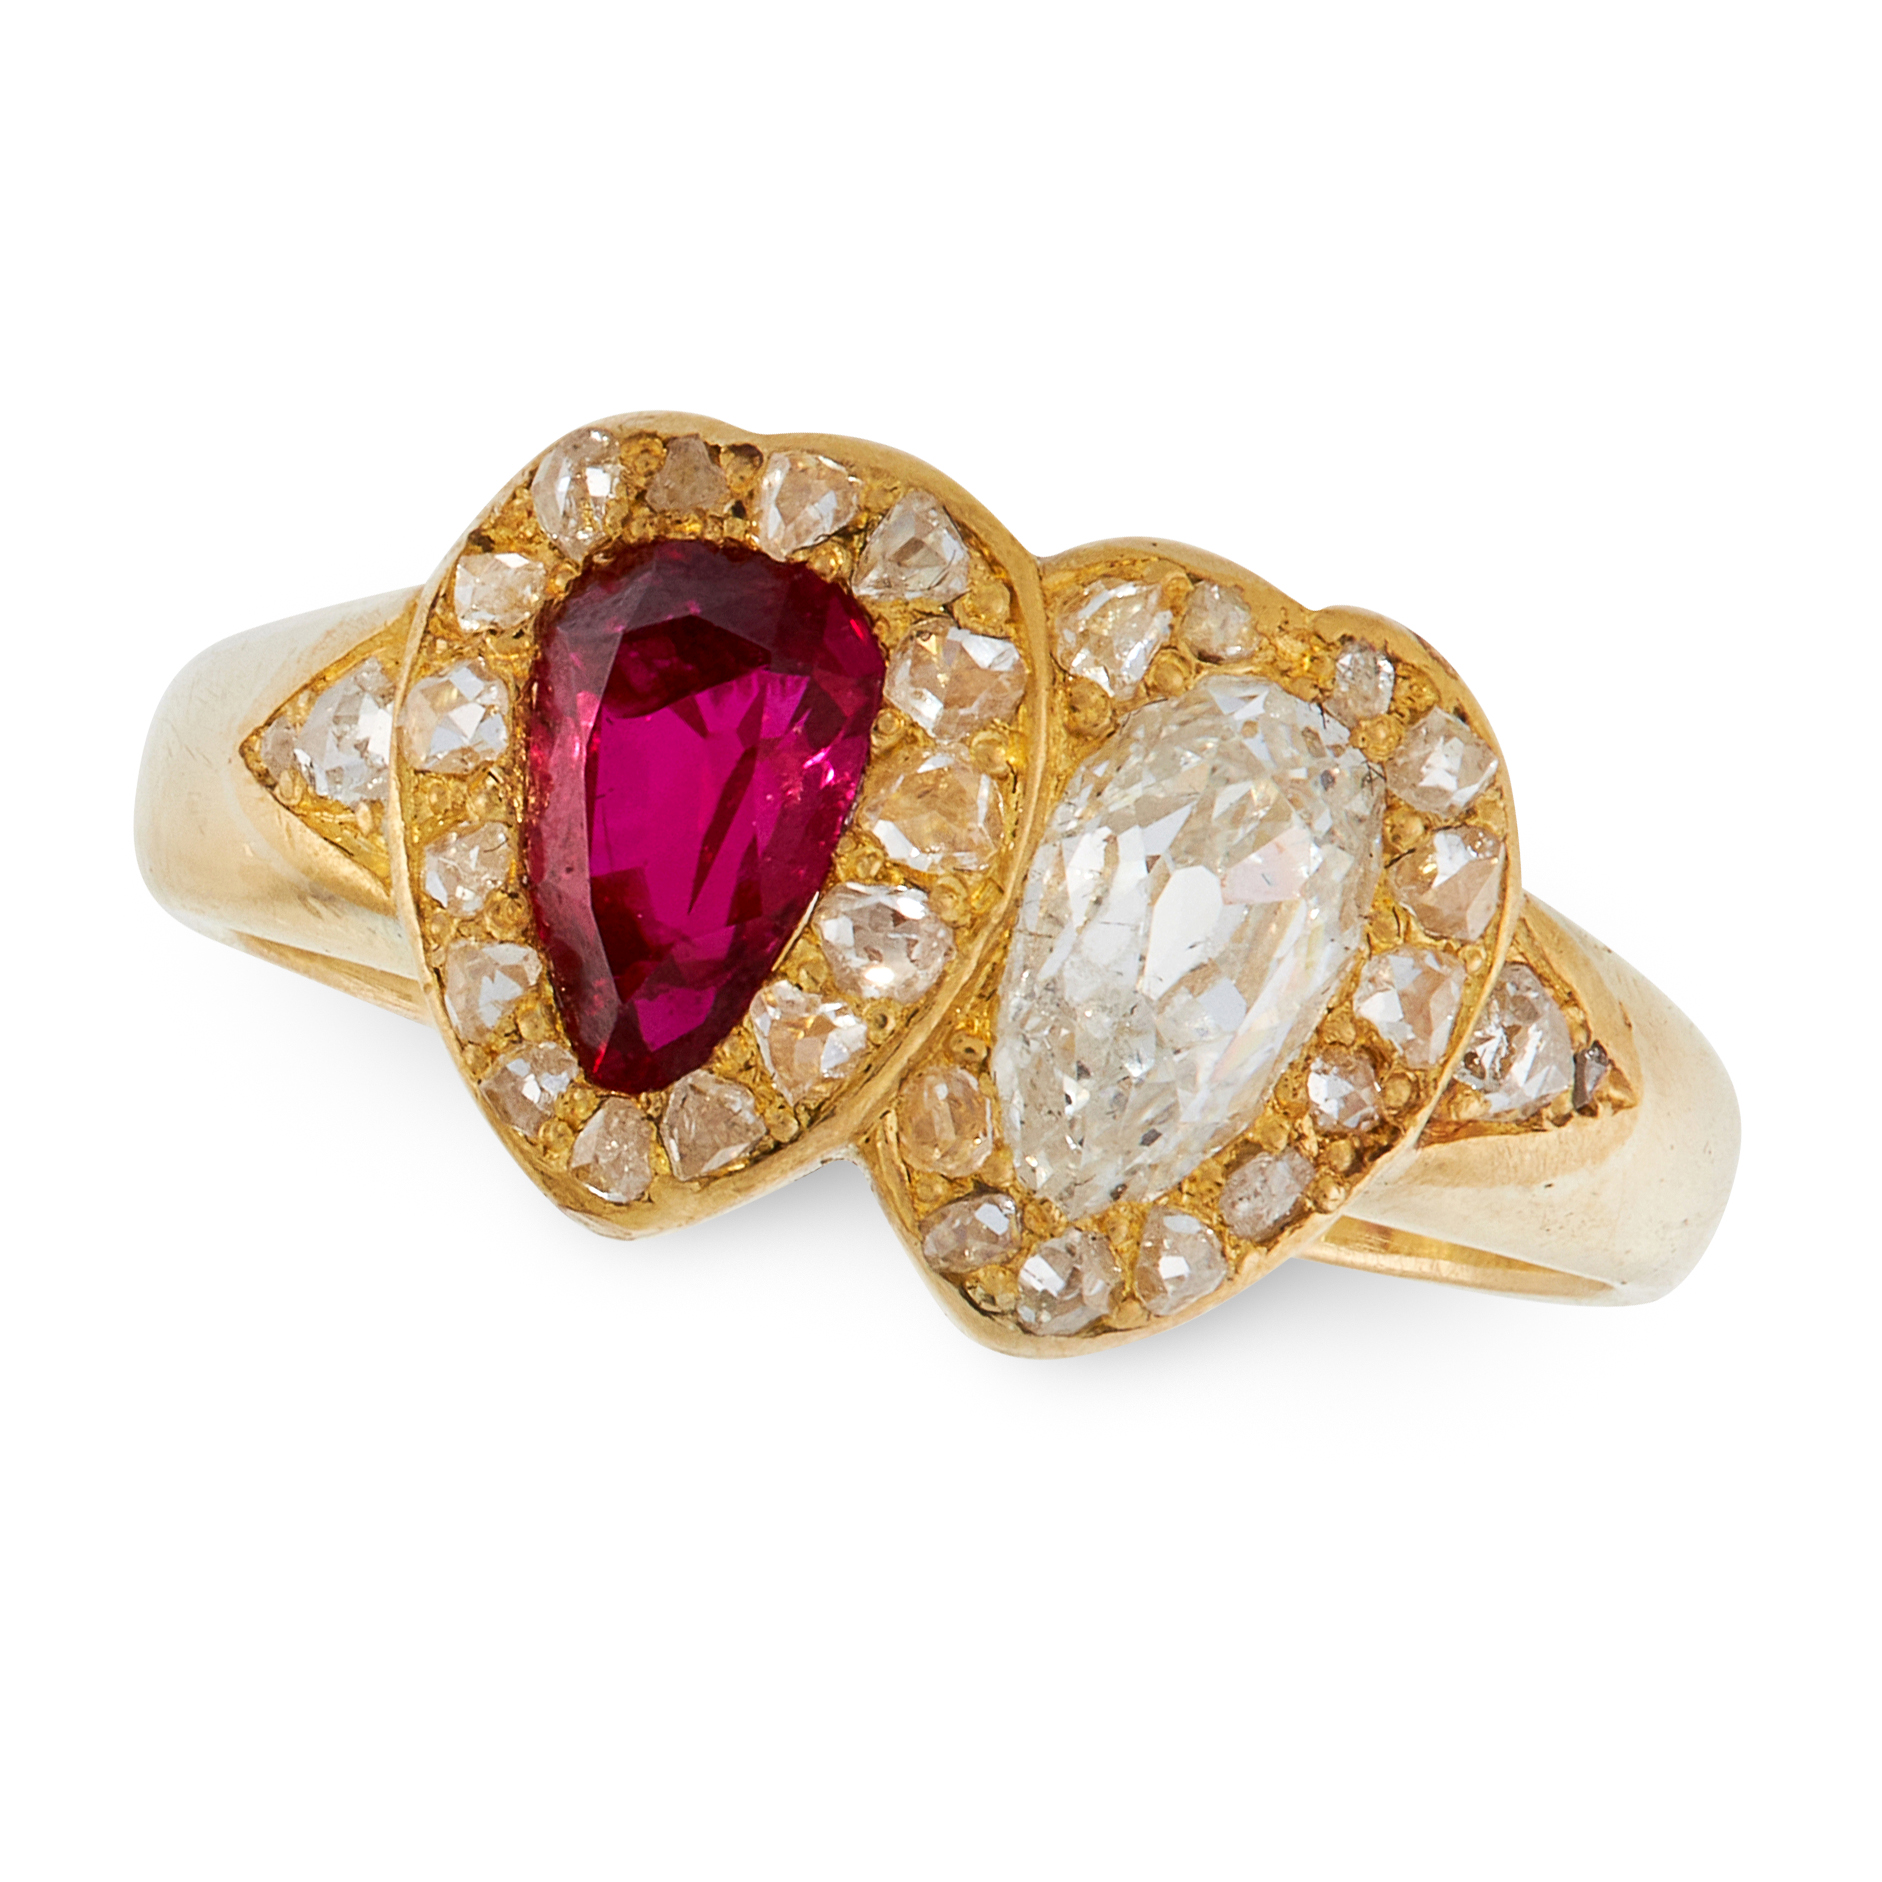 AN ANTIQUE RUBY AND DIAMOND SWEETHEART RING in 18ct yellow gold, in the form of two interlocking